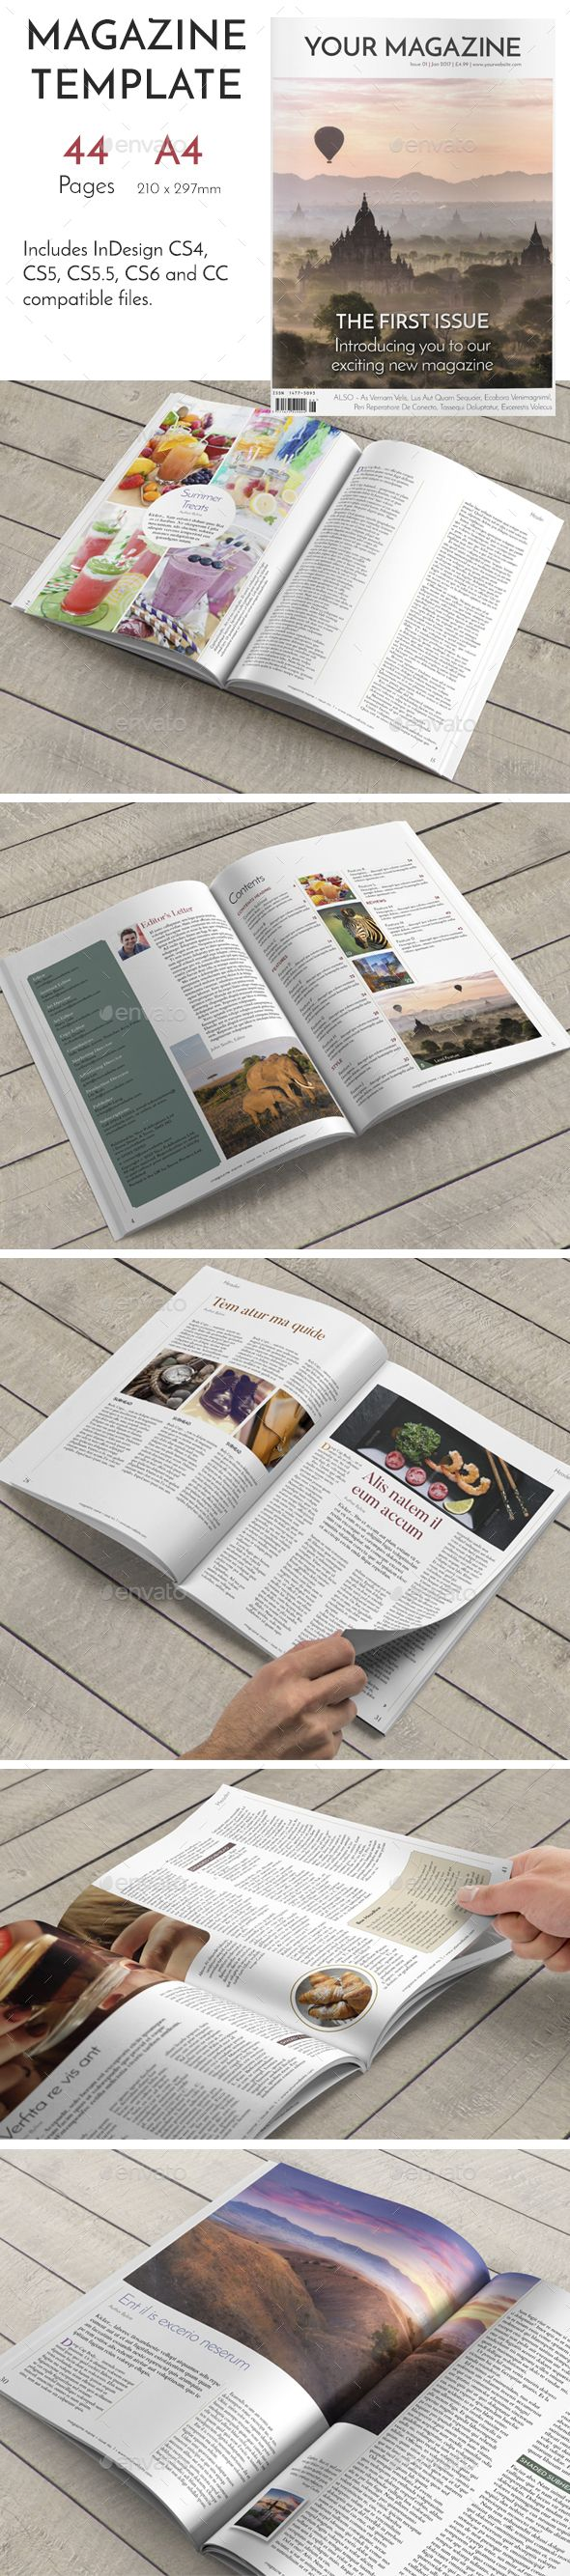 44 Page Elegant InDesign Magazine A4 by layoutdesigner A simple, yet elegant, 44 page magazine template complete with cover design, contents page and editorial spreads. This template wa